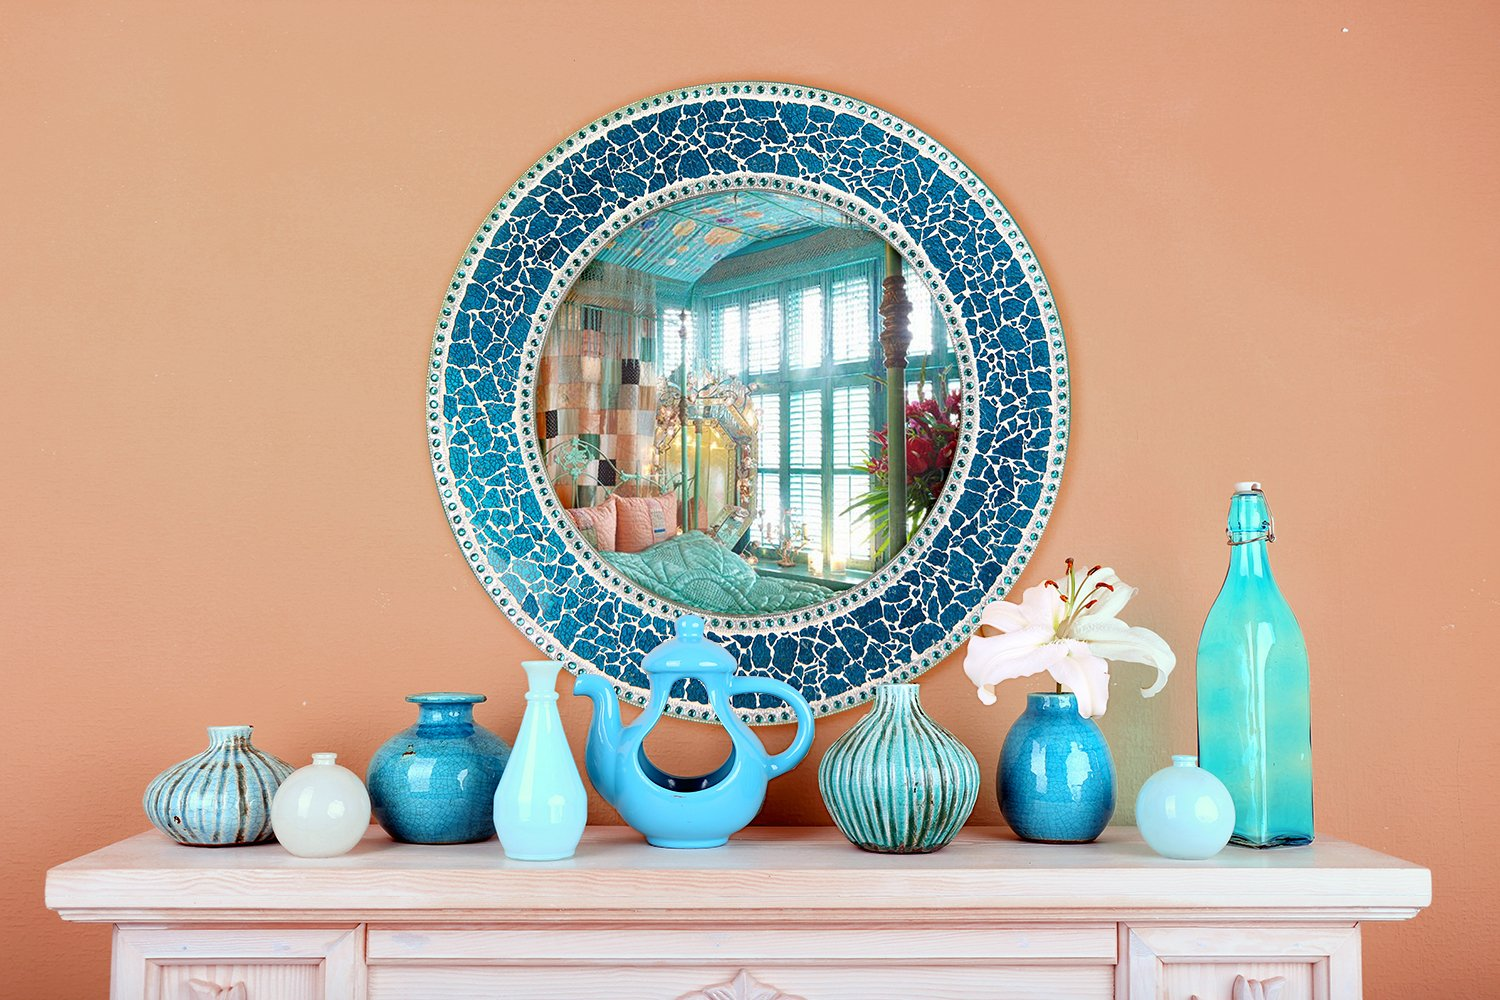 DecorShore 24-Inch Round Crackled Glass Mosaic Wall Mirror, Sapphire